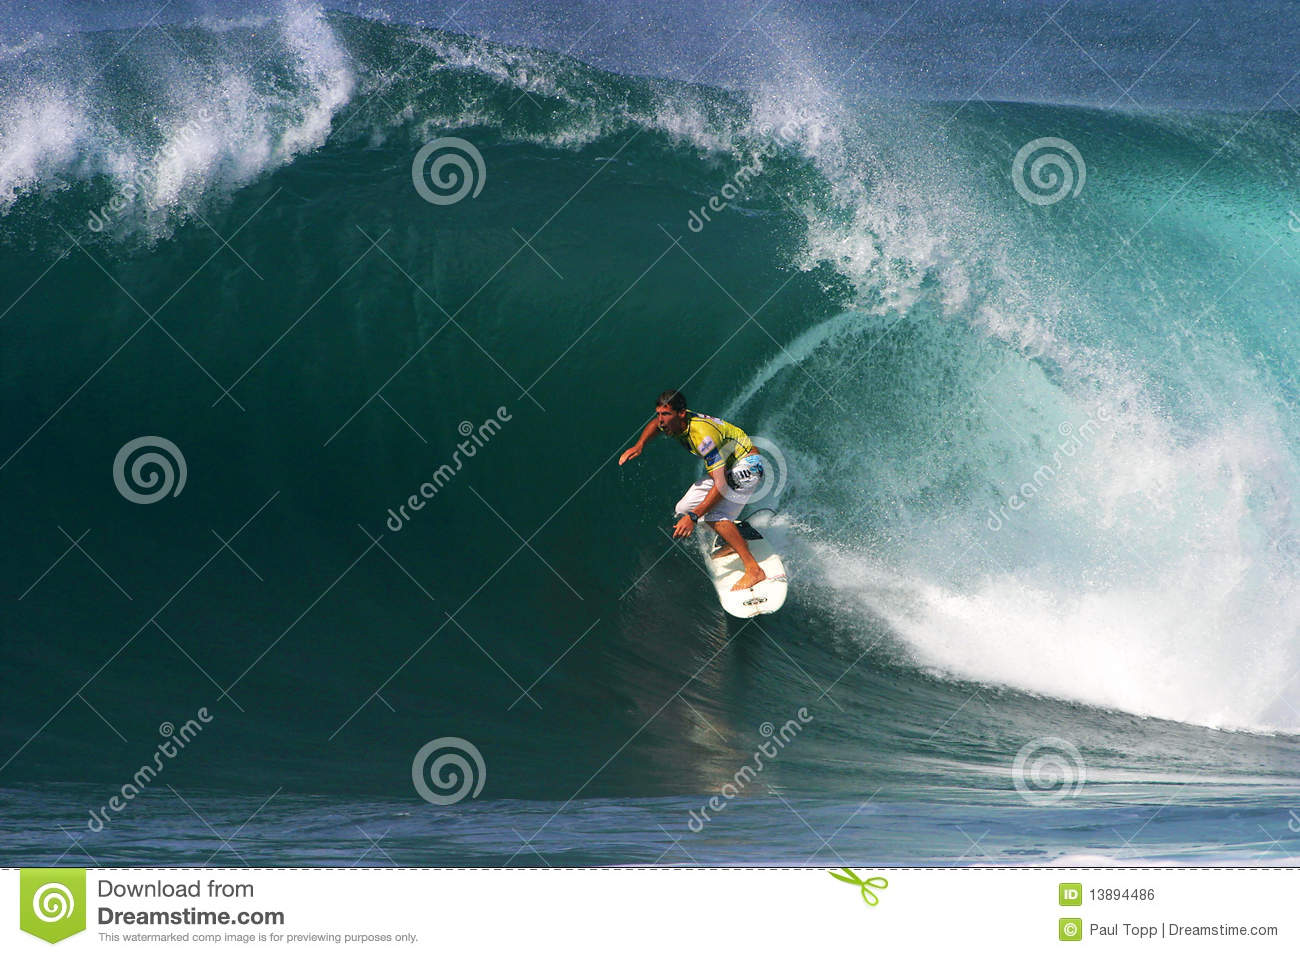 Fers d Andy de surfer surfant au Backdoor